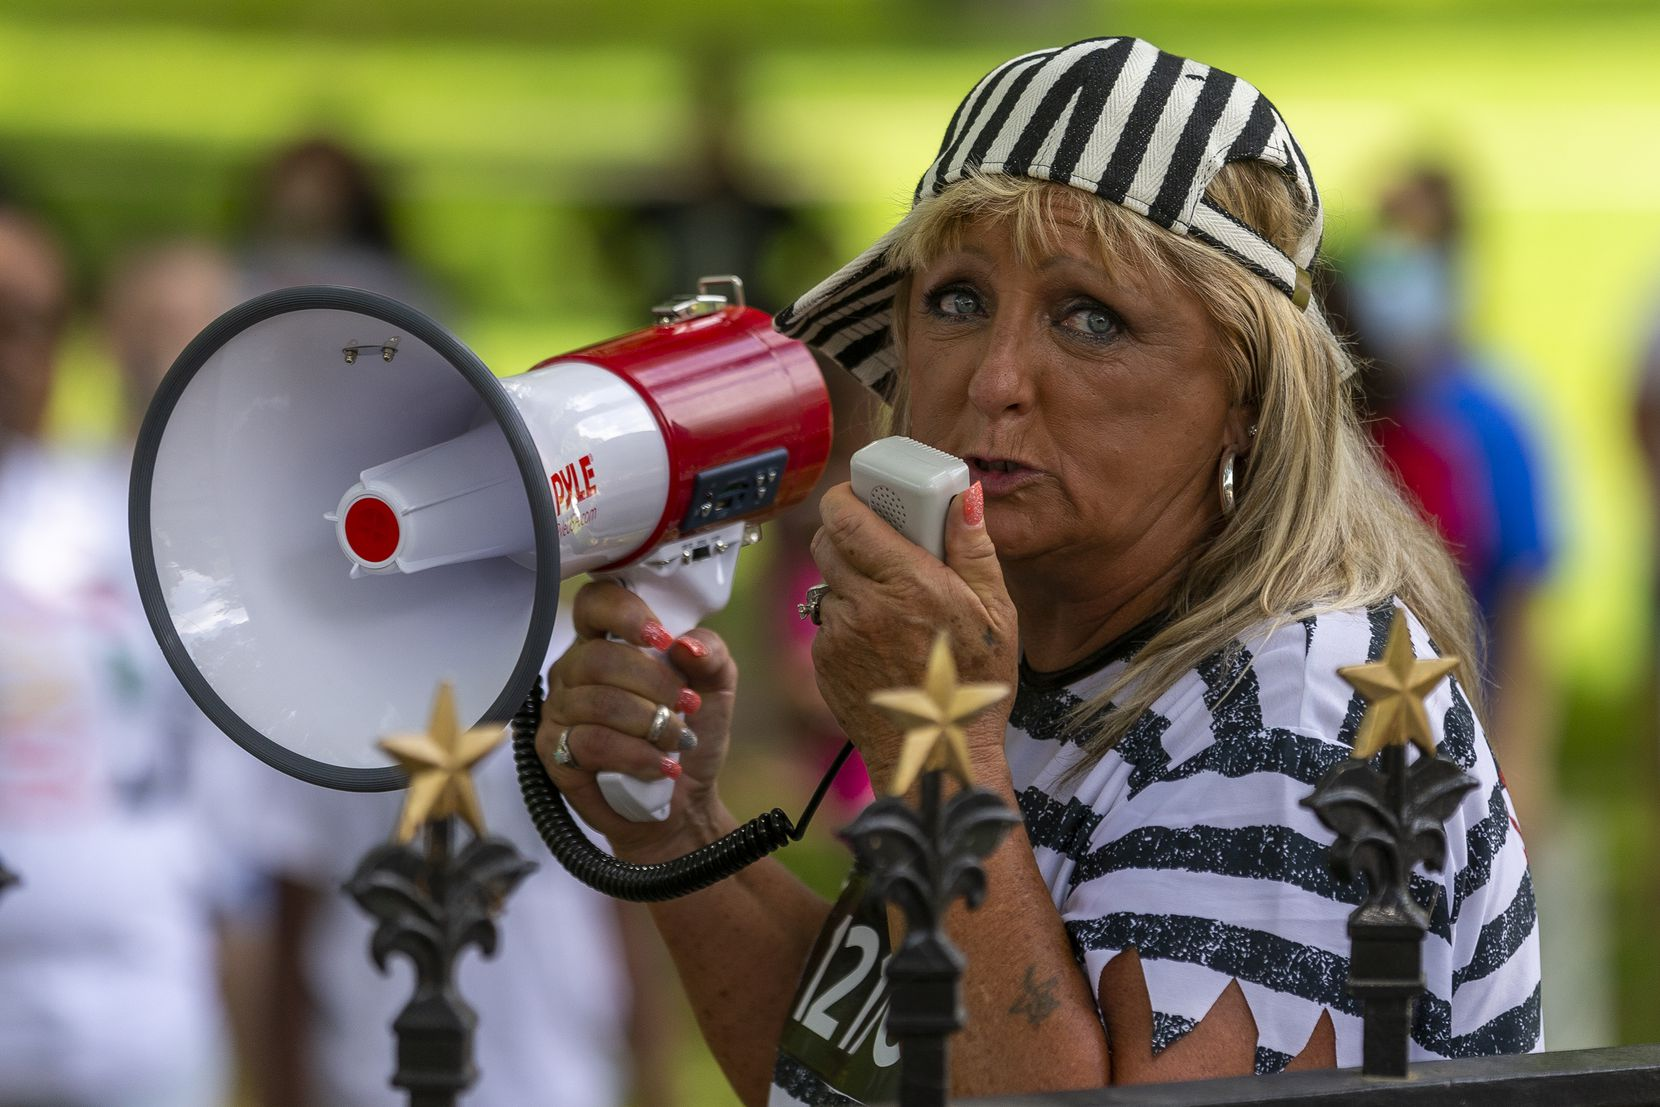 Tina Carraway, of Marlin, speaks during a rally with other family members of people incarcerated in Texas prisons for a rally outside of the governor's mansion to draw attention to the coronavirus in Texas prisons, Saturday, May 23, 2020. (Stephen Spillman/Special Contributor)